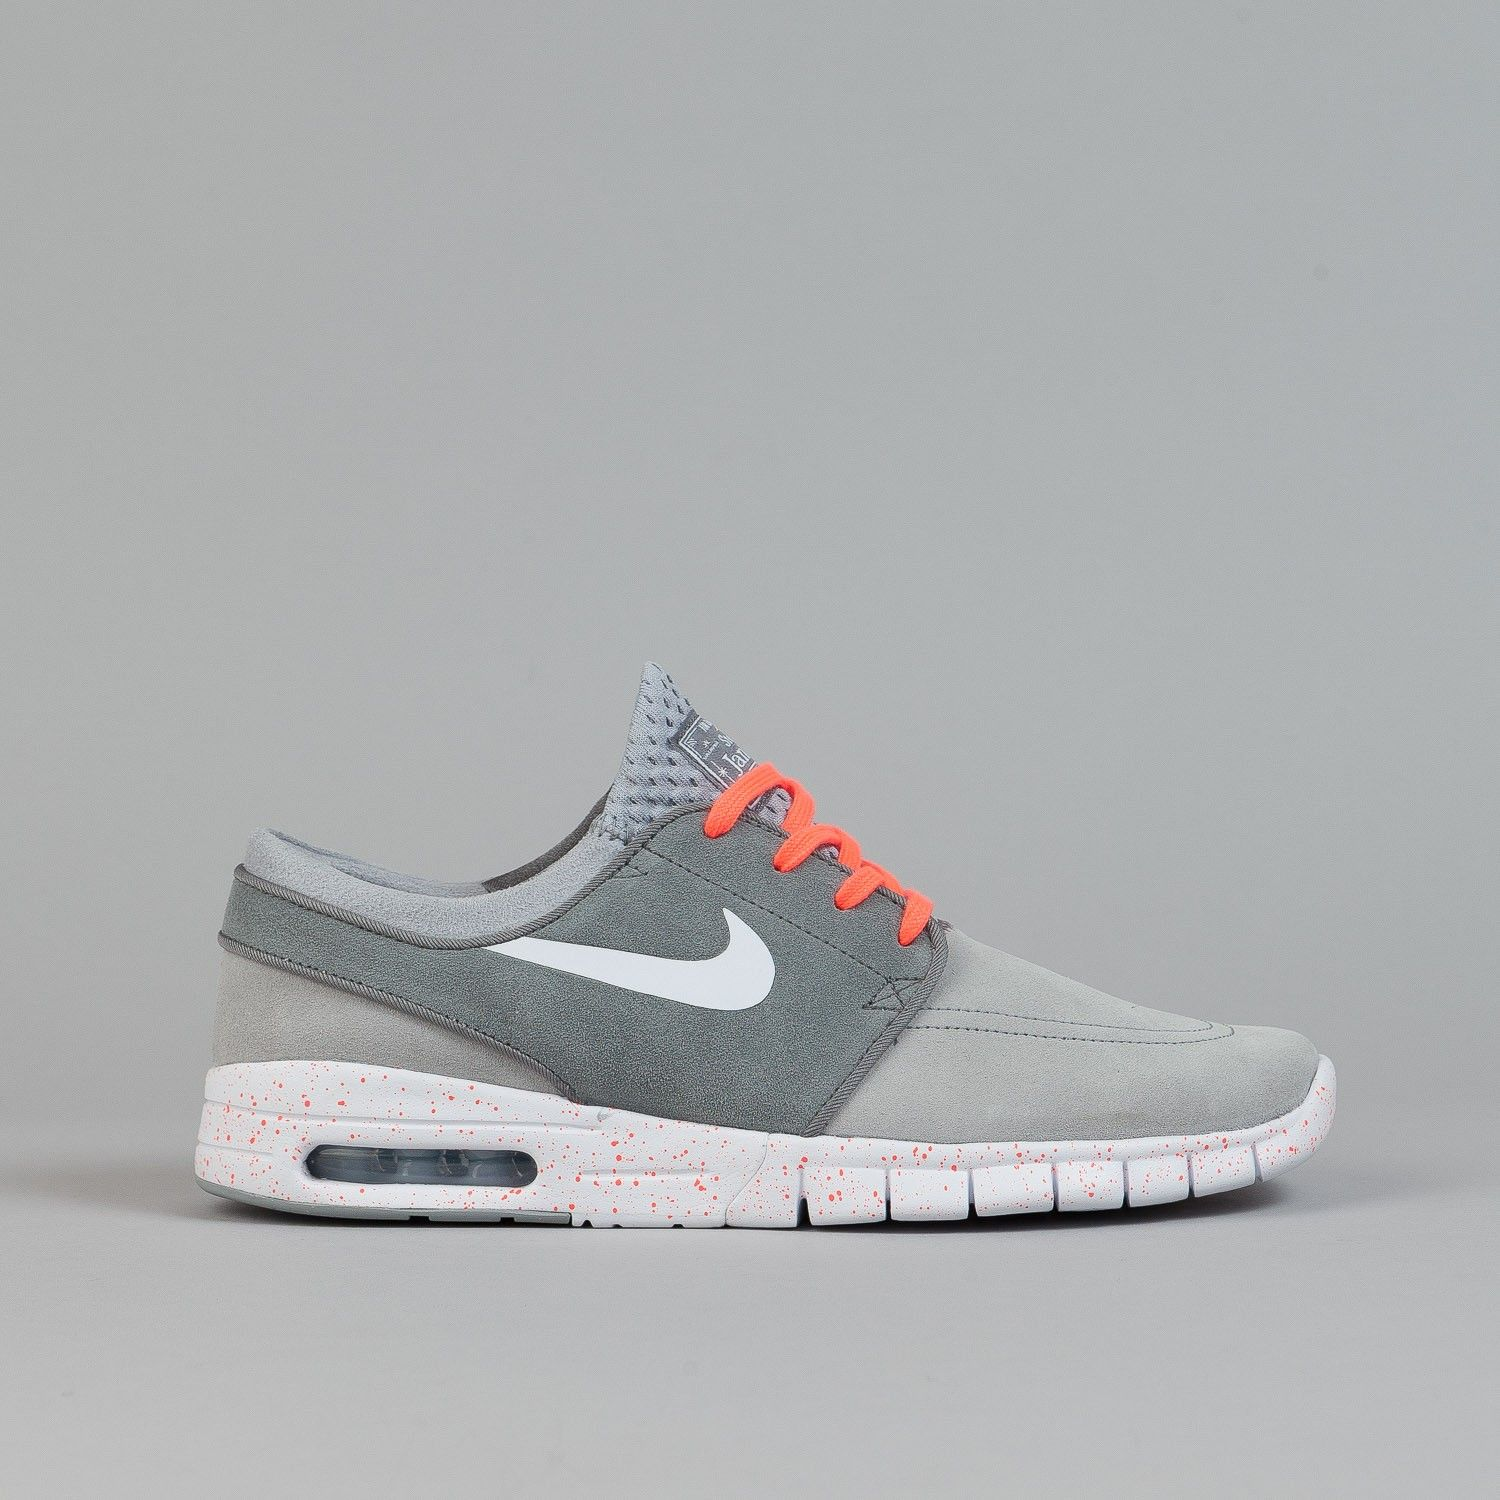 1d70eb09267b33 ... Nike SB Stefan Janoski Max Suede Shoes - Wolf Grey   White   Cool Grey  ...